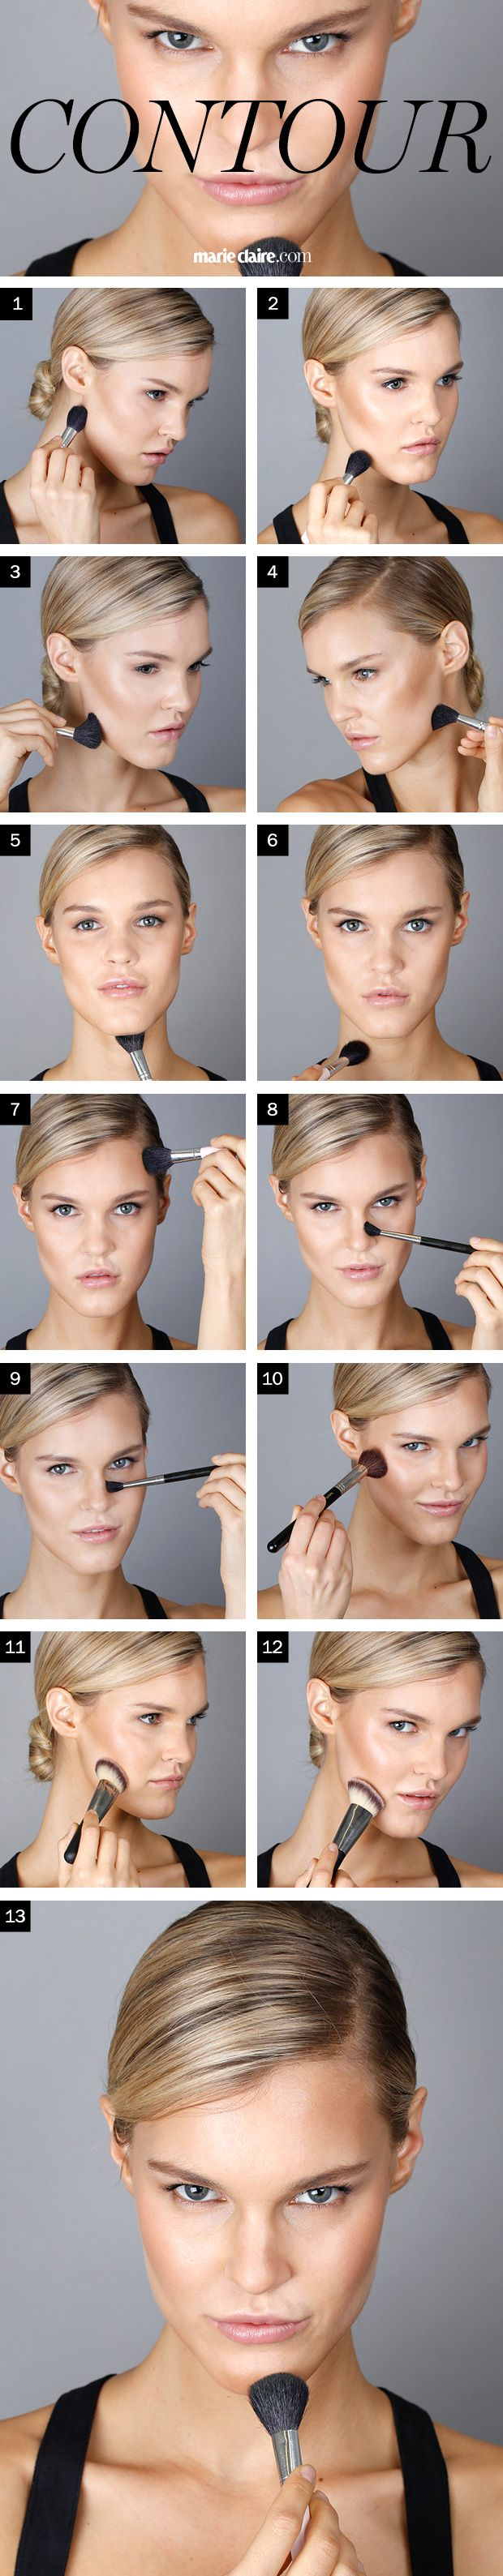 Finally, the Easiest Way to Contour Your Face If You're ...